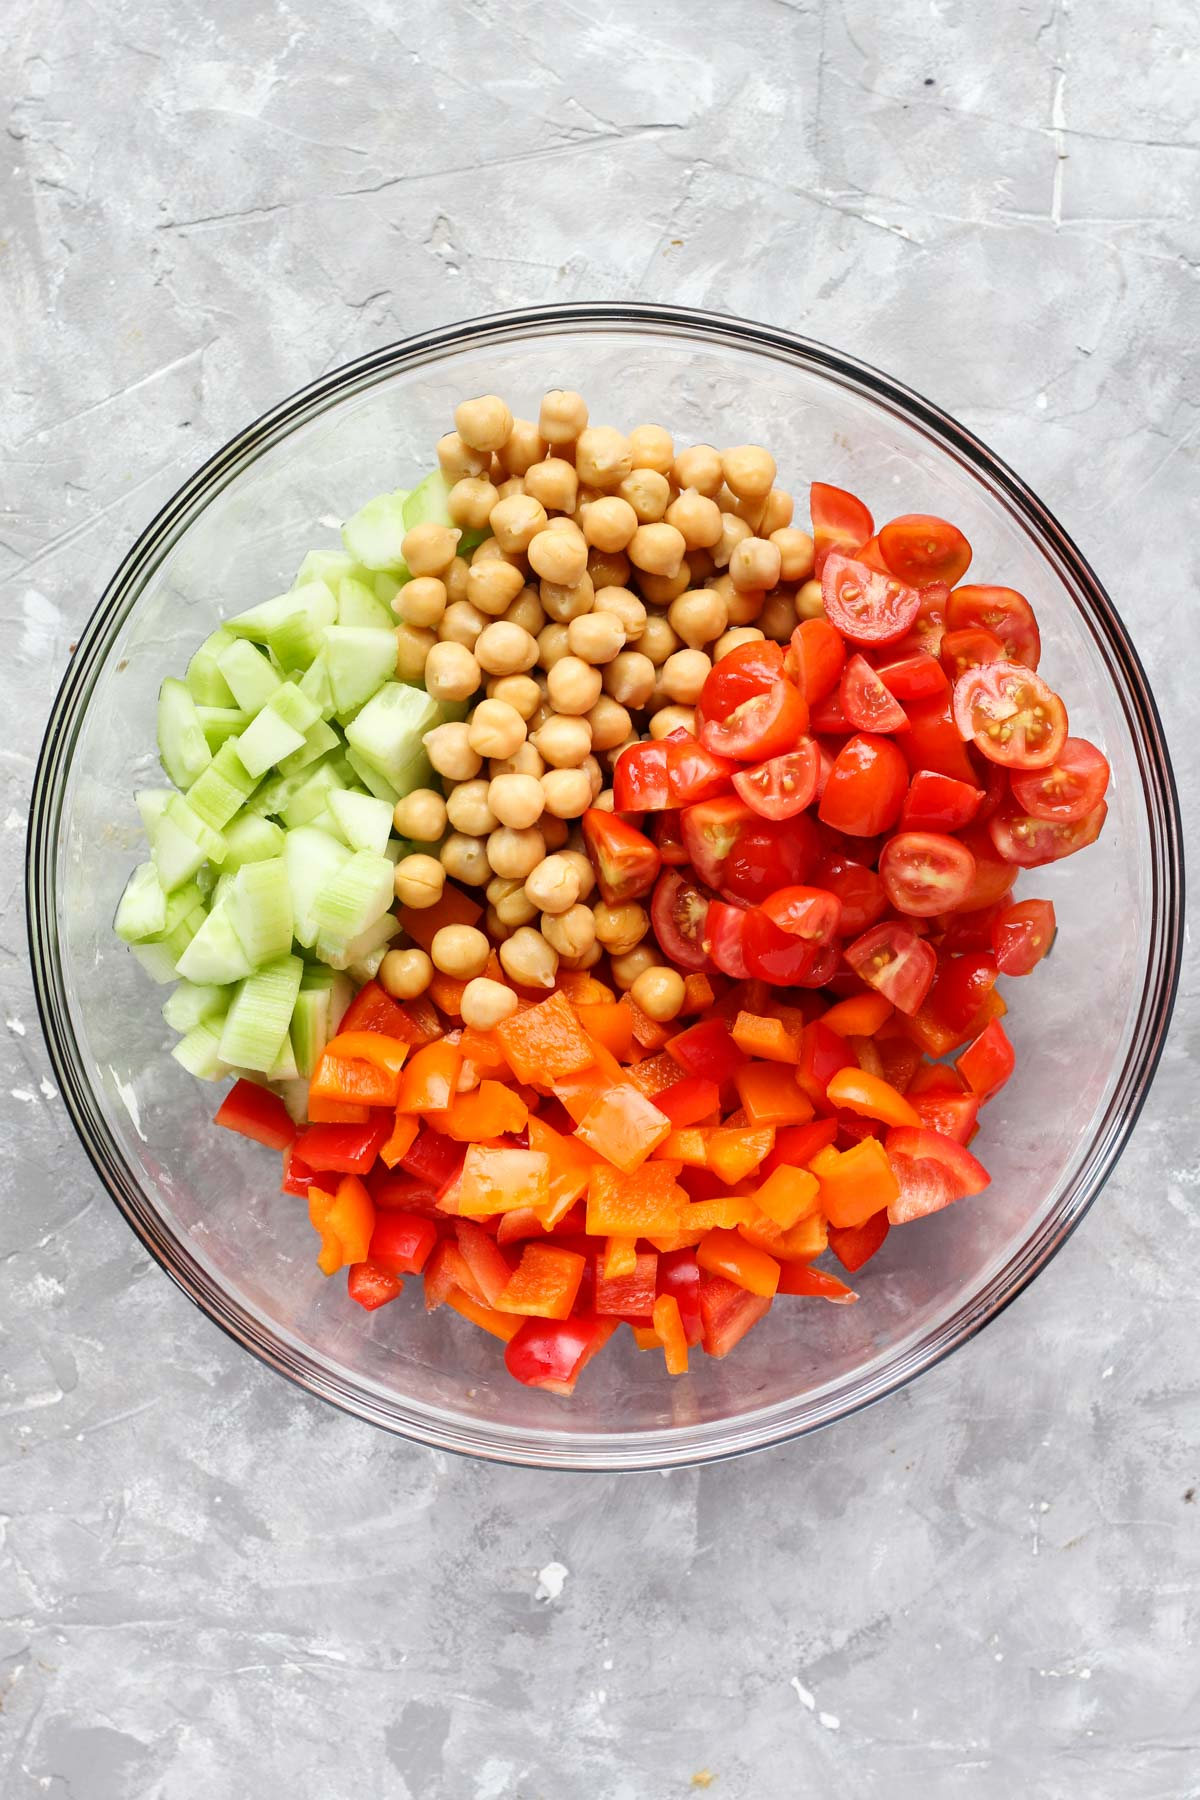 Vegetables and beans in mixing bowl.